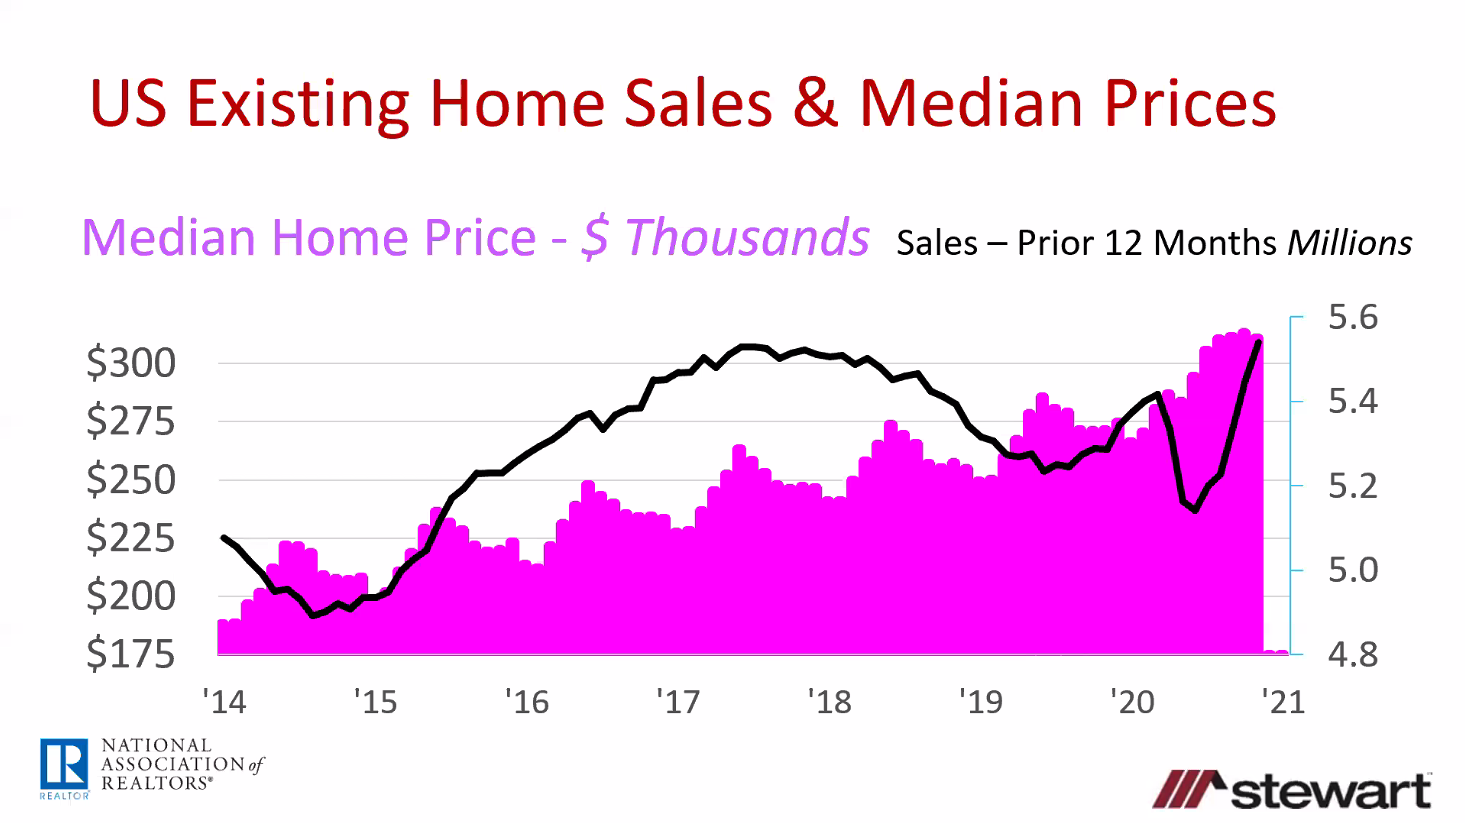 2021 home sales forecast